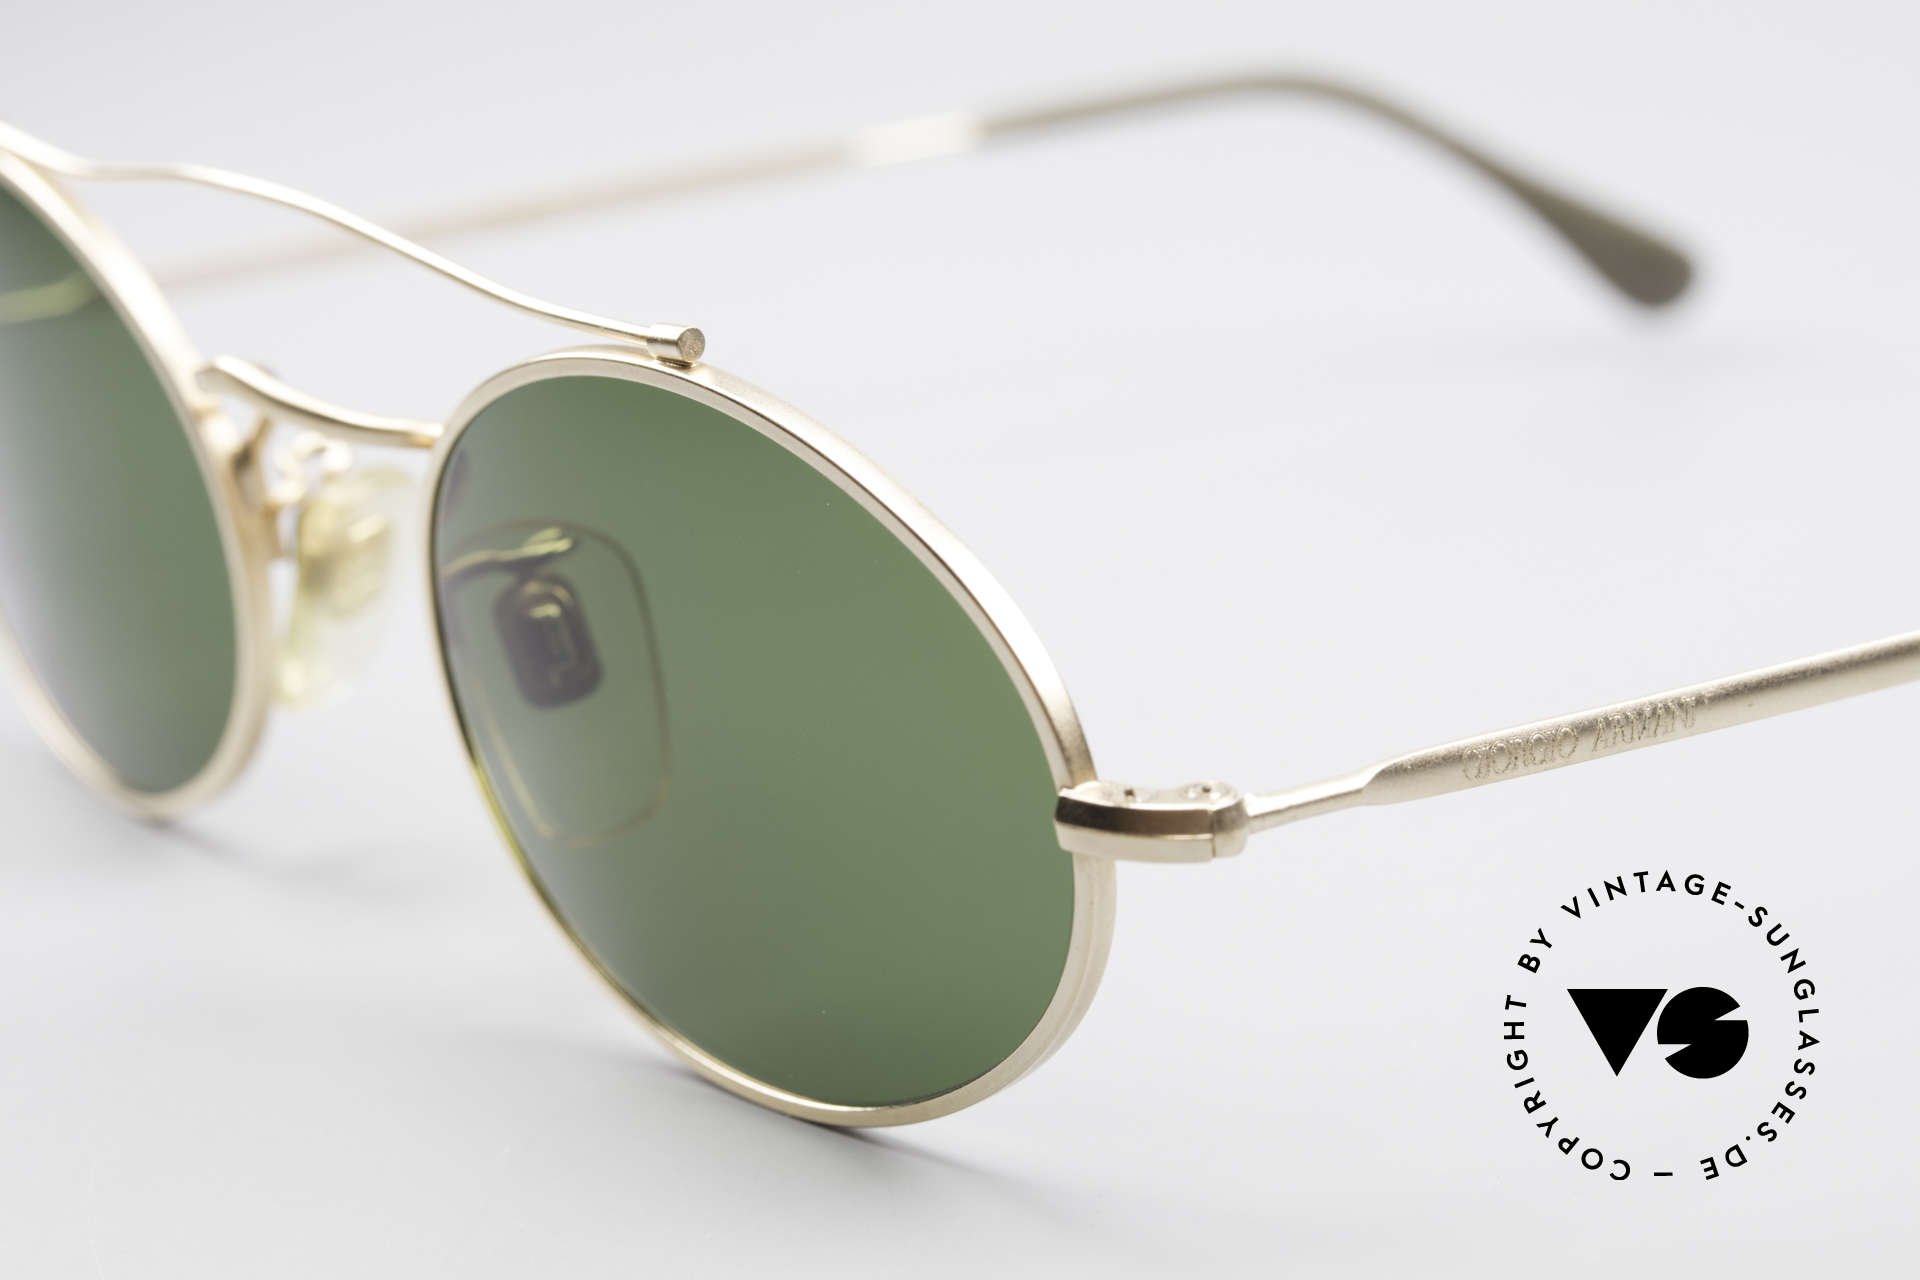 Giorgio Armani 115 90's Designer Sunglasses, unworn rarity (like all our vintage Armani frames), Made for Men and Women